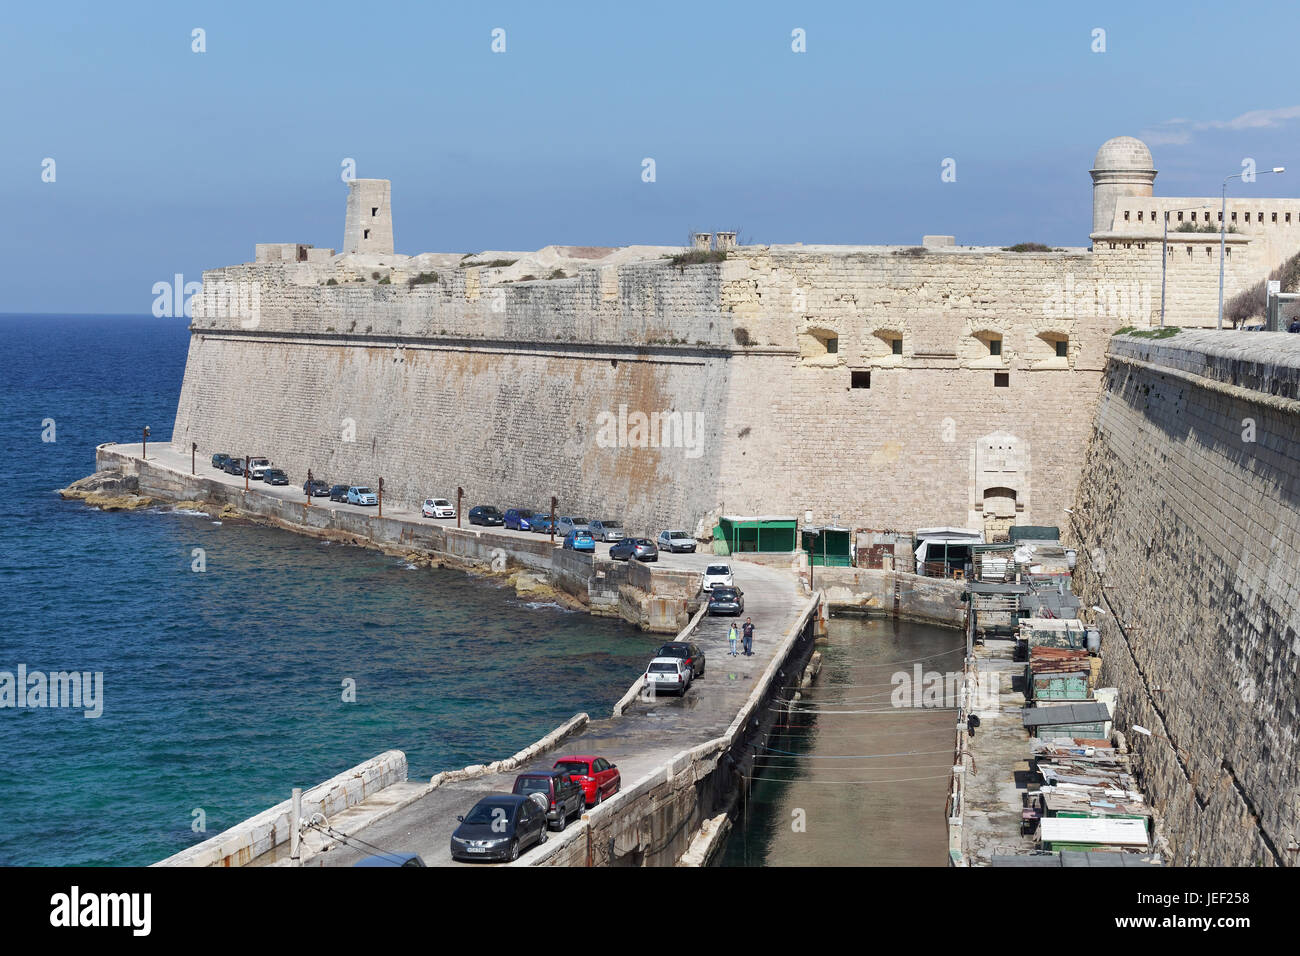 View of St. Gregory Bastion, Lower Fort St. Elmo, Valletta, Malta - Stock Image